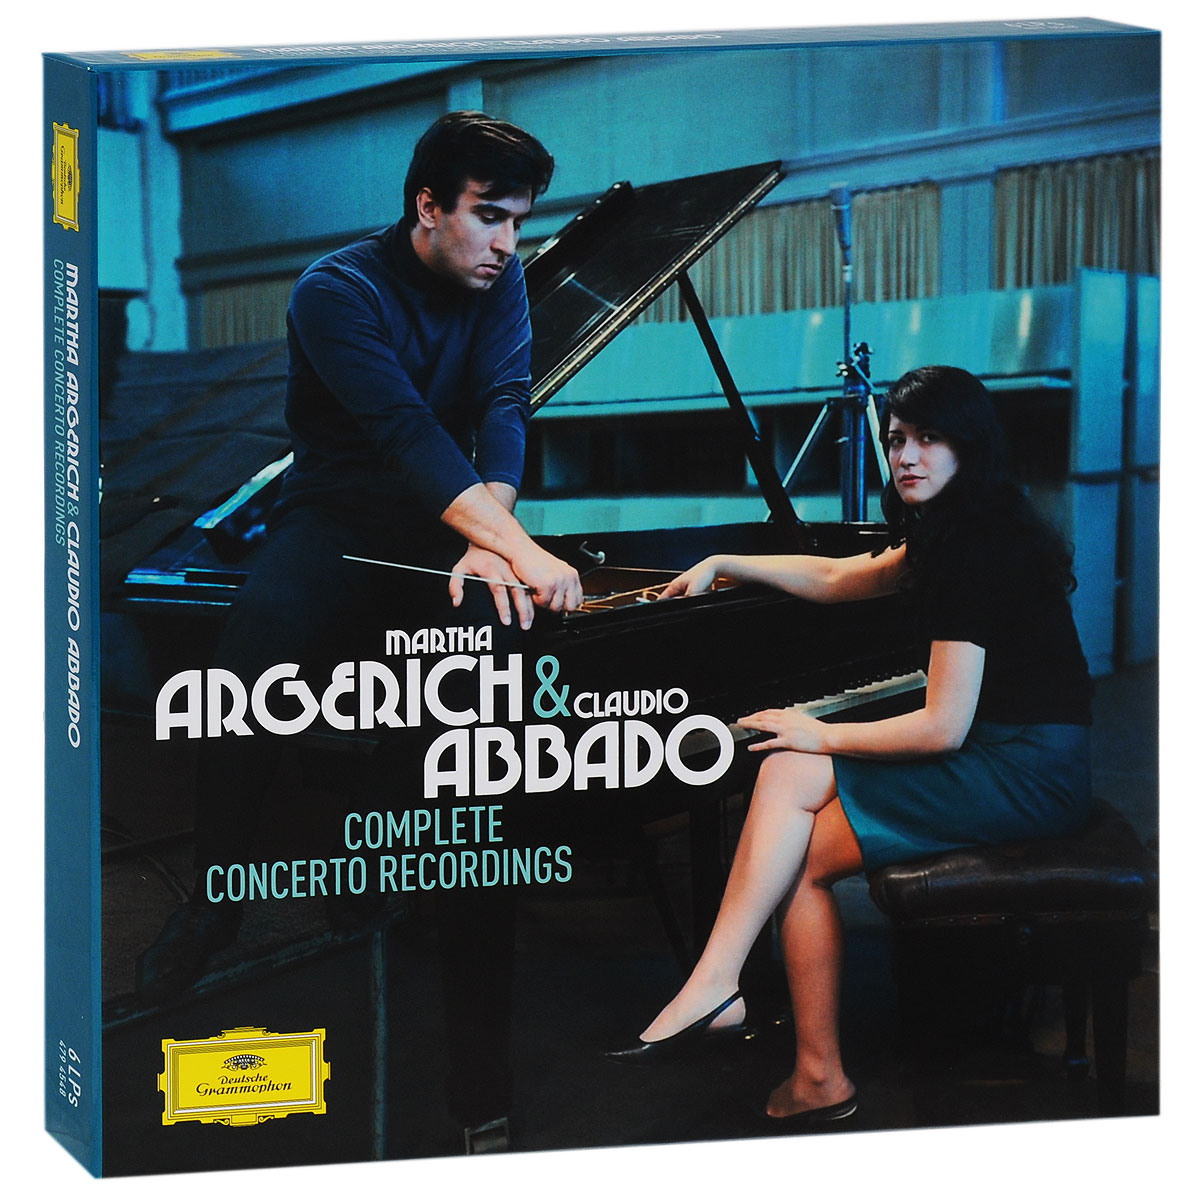 Марта Аргерих,Berliner Philharmoniker,Клаудио Аббадо,The London Symphony Orchestra,Mahler Chamber Orchestra,Orchestra Mozart Martha Argerich & Claudio Abbado. Complete Concerto Recordings. Limited Edition (6 LP) рик уэйкман the london symphony orchestra english chamber choir давид мишам rick wakeman journey to the centre of the earth 3 cd dvd